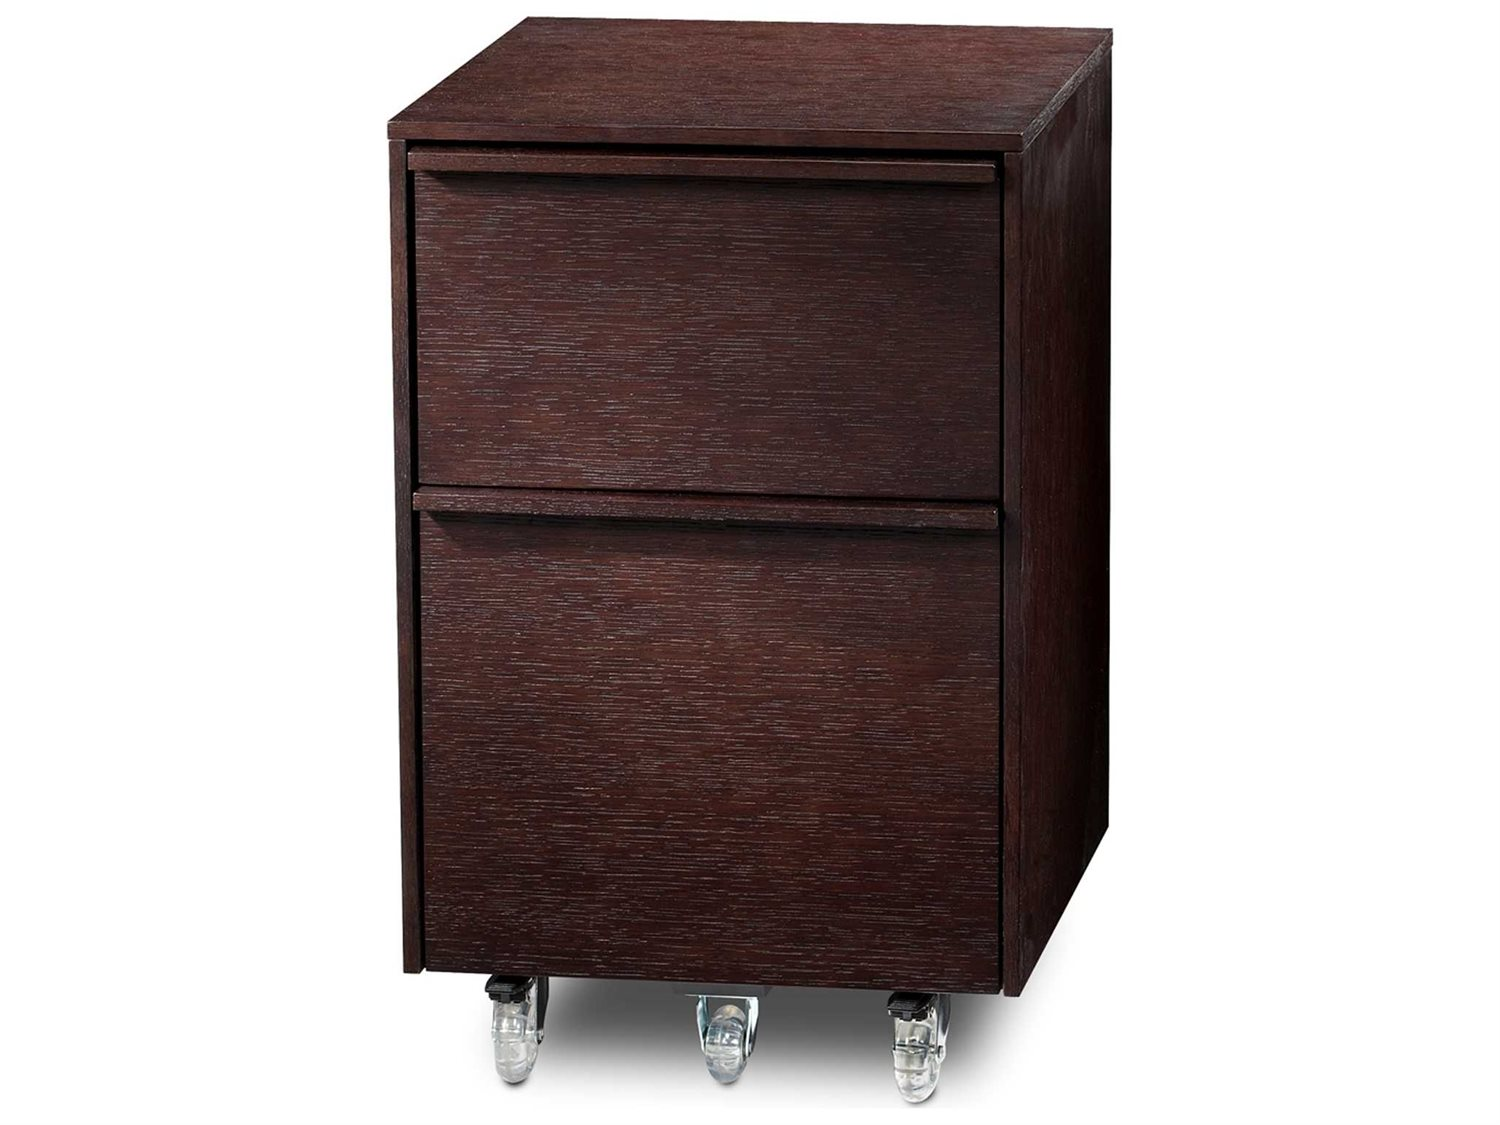 Bdi Cascadia 16 X 18 Espresso Stained Oak Two Drawer Mobile Pedestal File Cabinet Bdi6207es